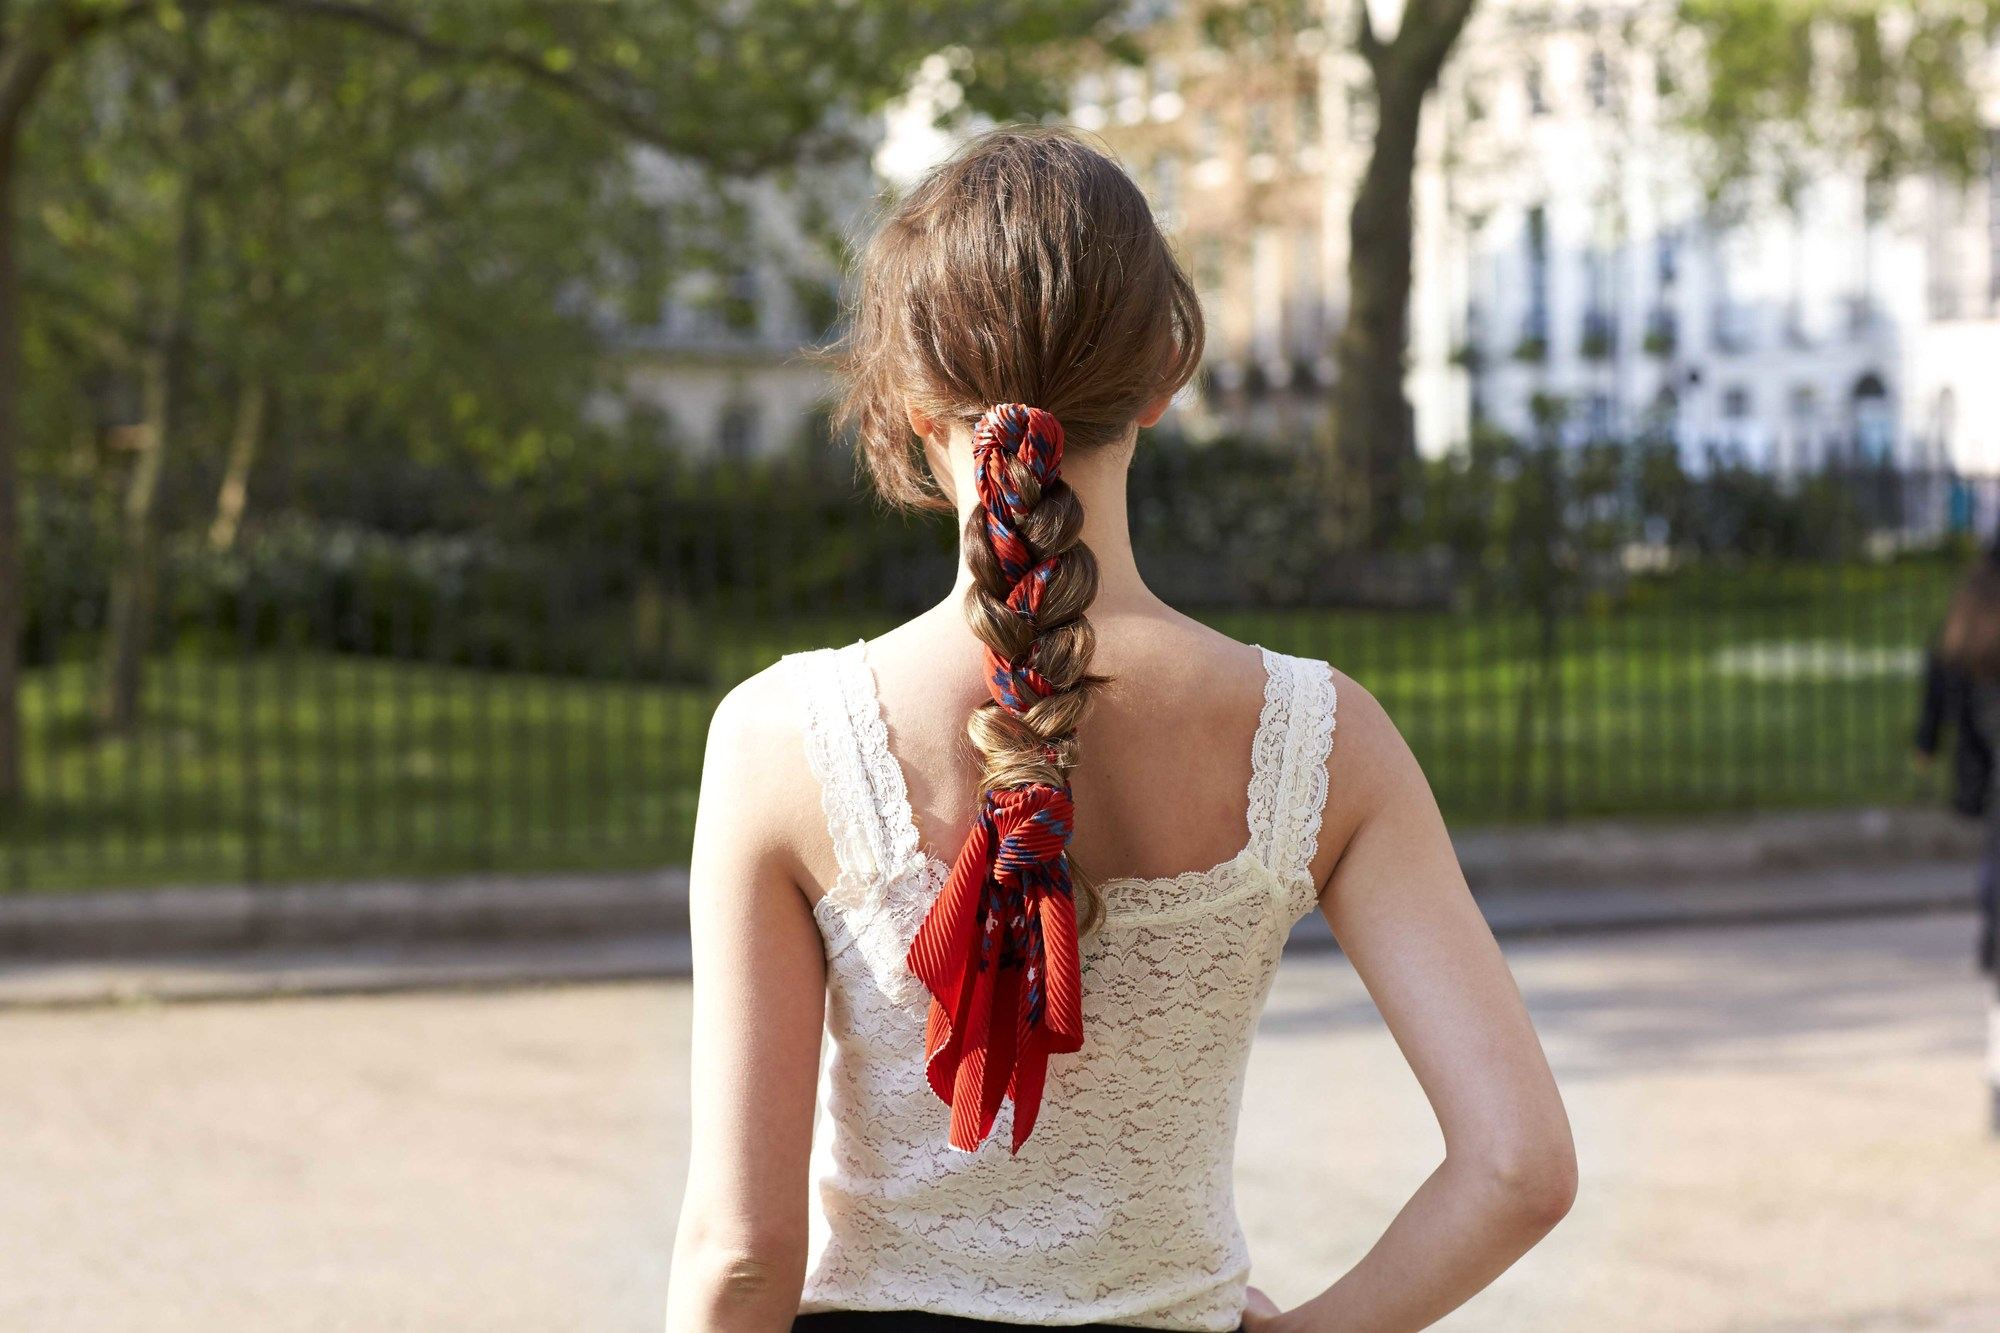 model outside with brunette hair wearing a red scarf in her plaited ponytail